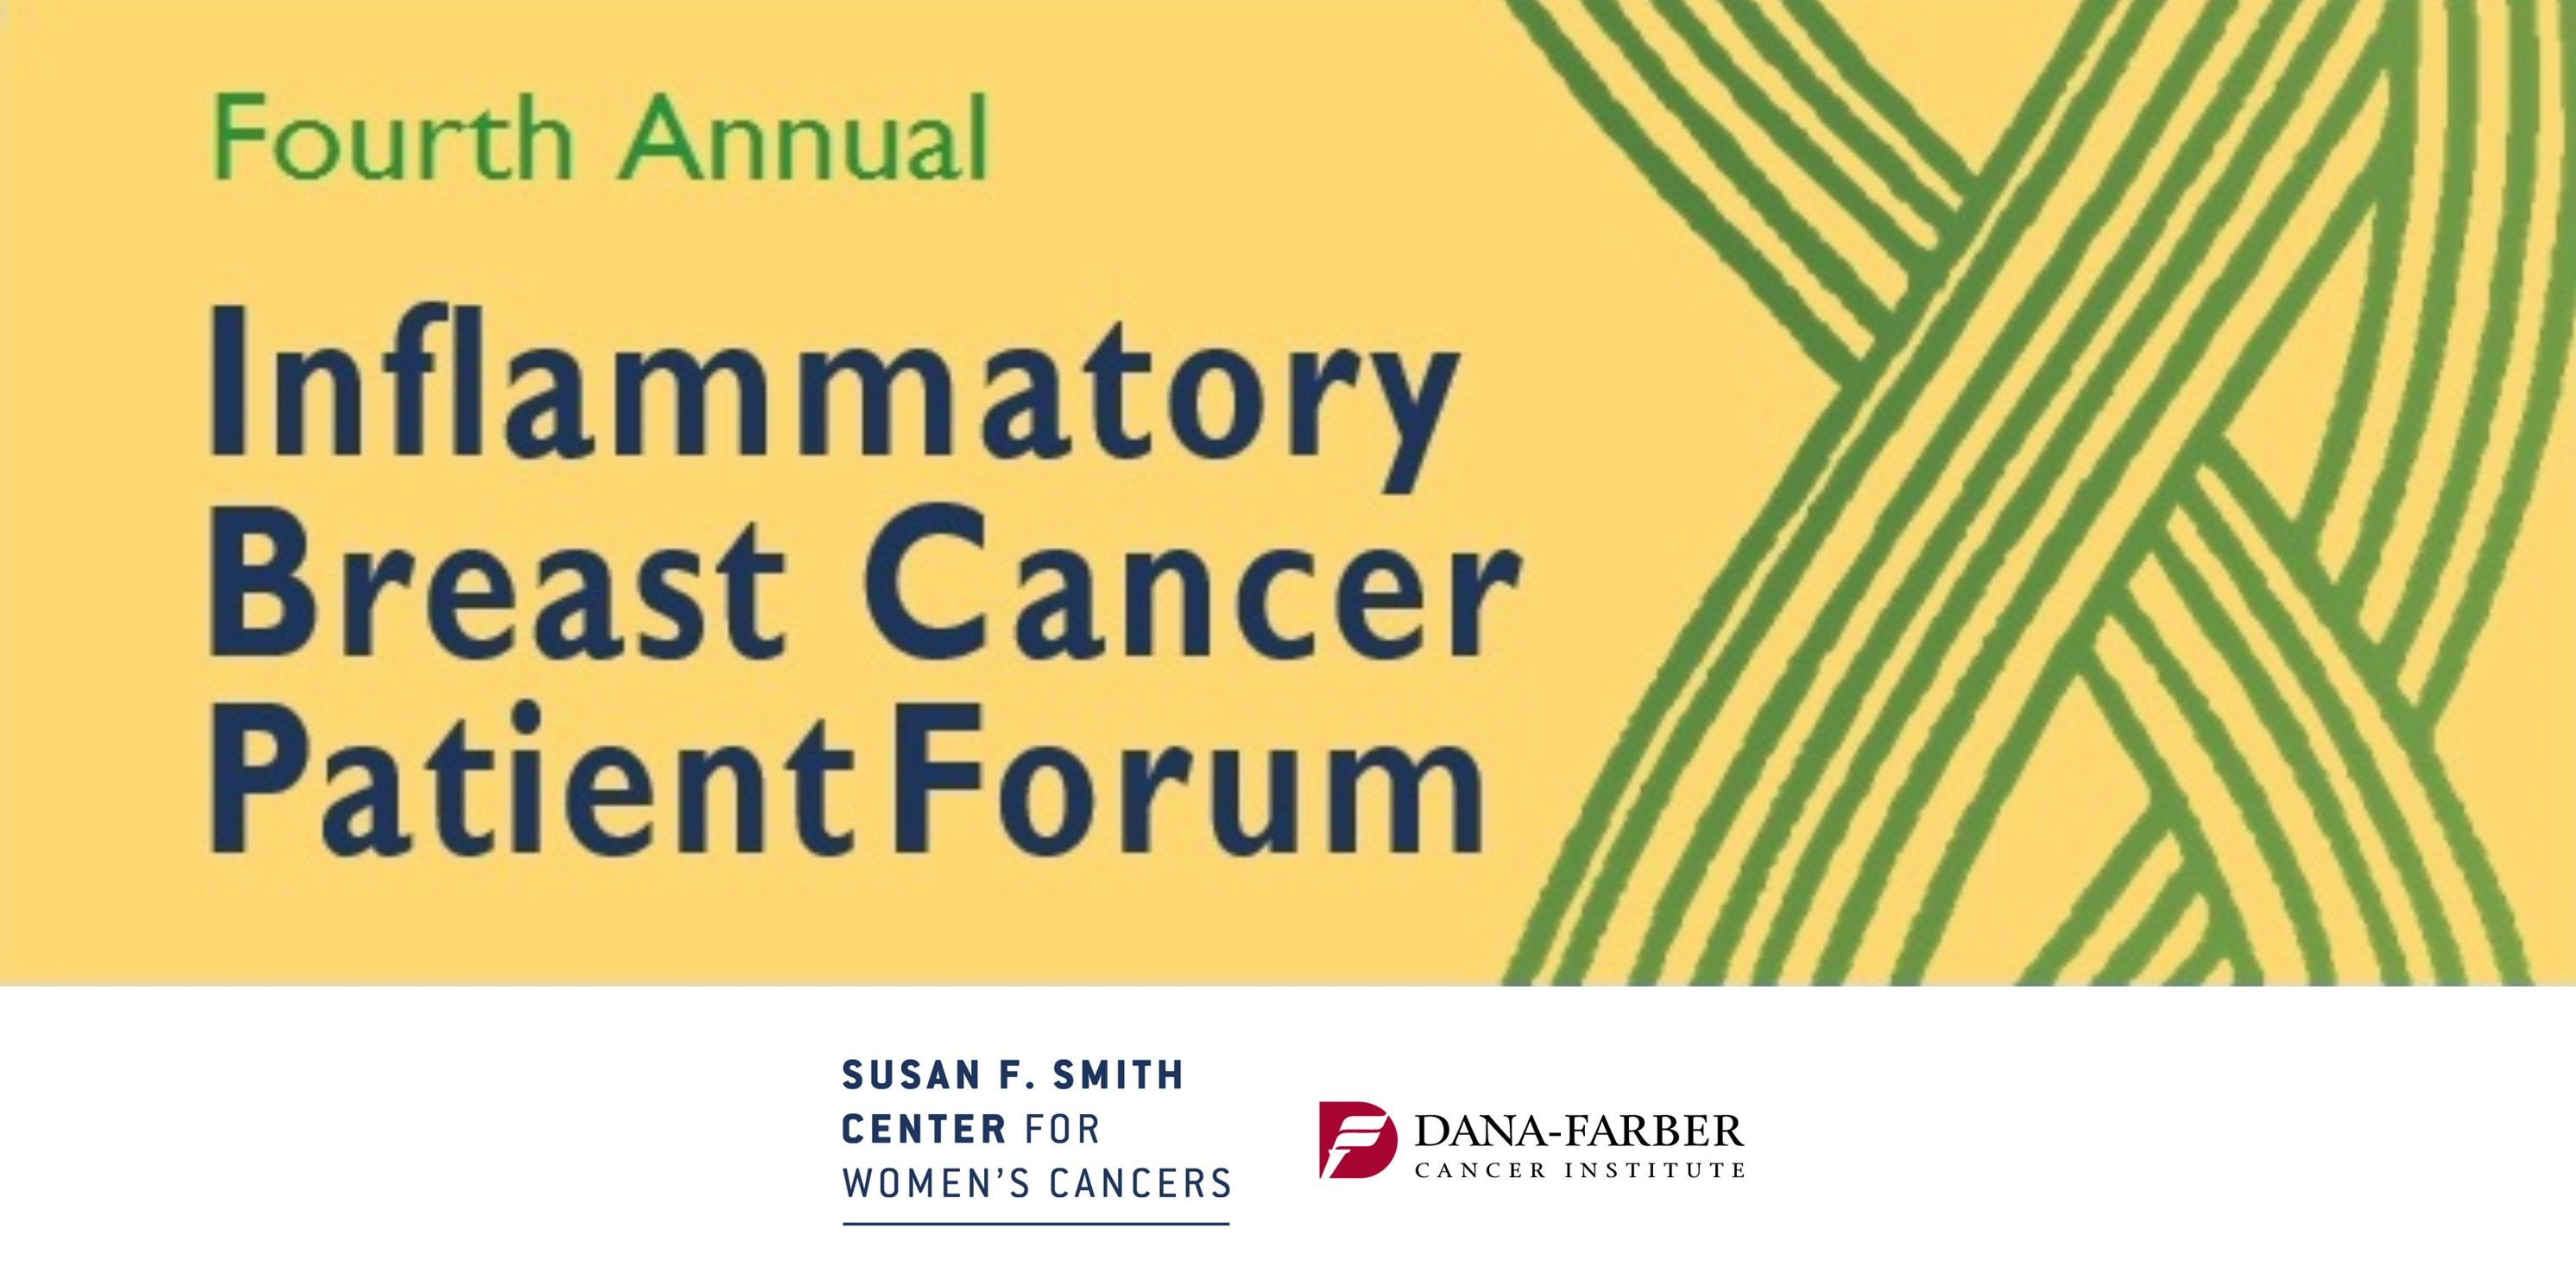 Fourth Annual Inflammatory Breast Cancer Patient Forum